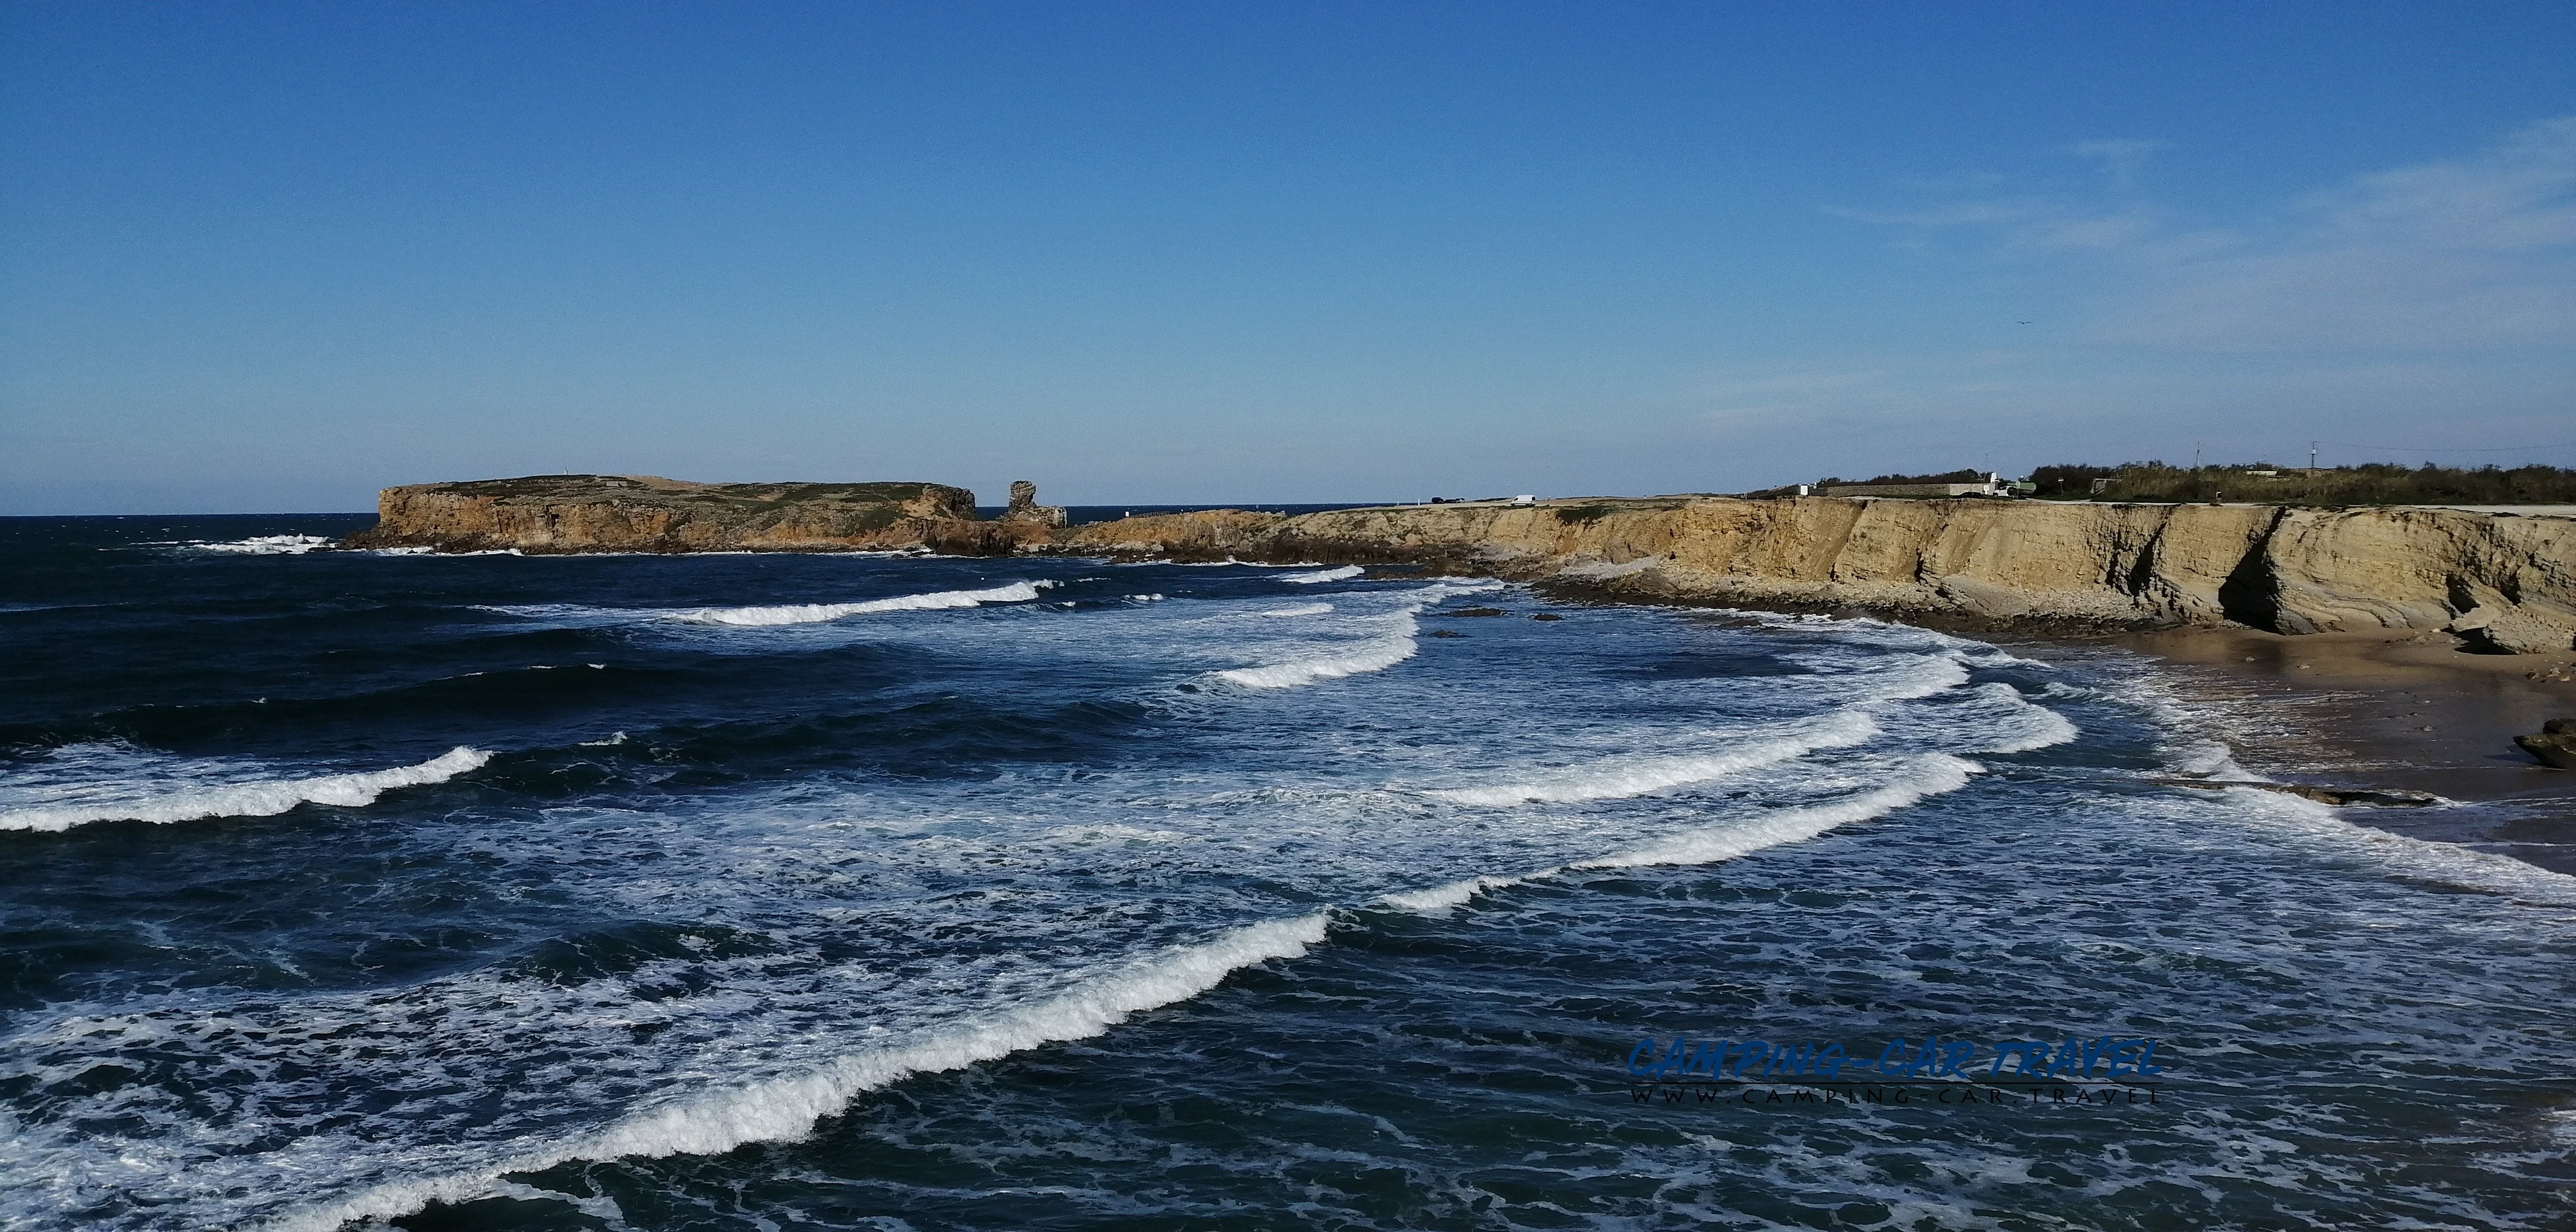 aire services camping car Peniche Portugal